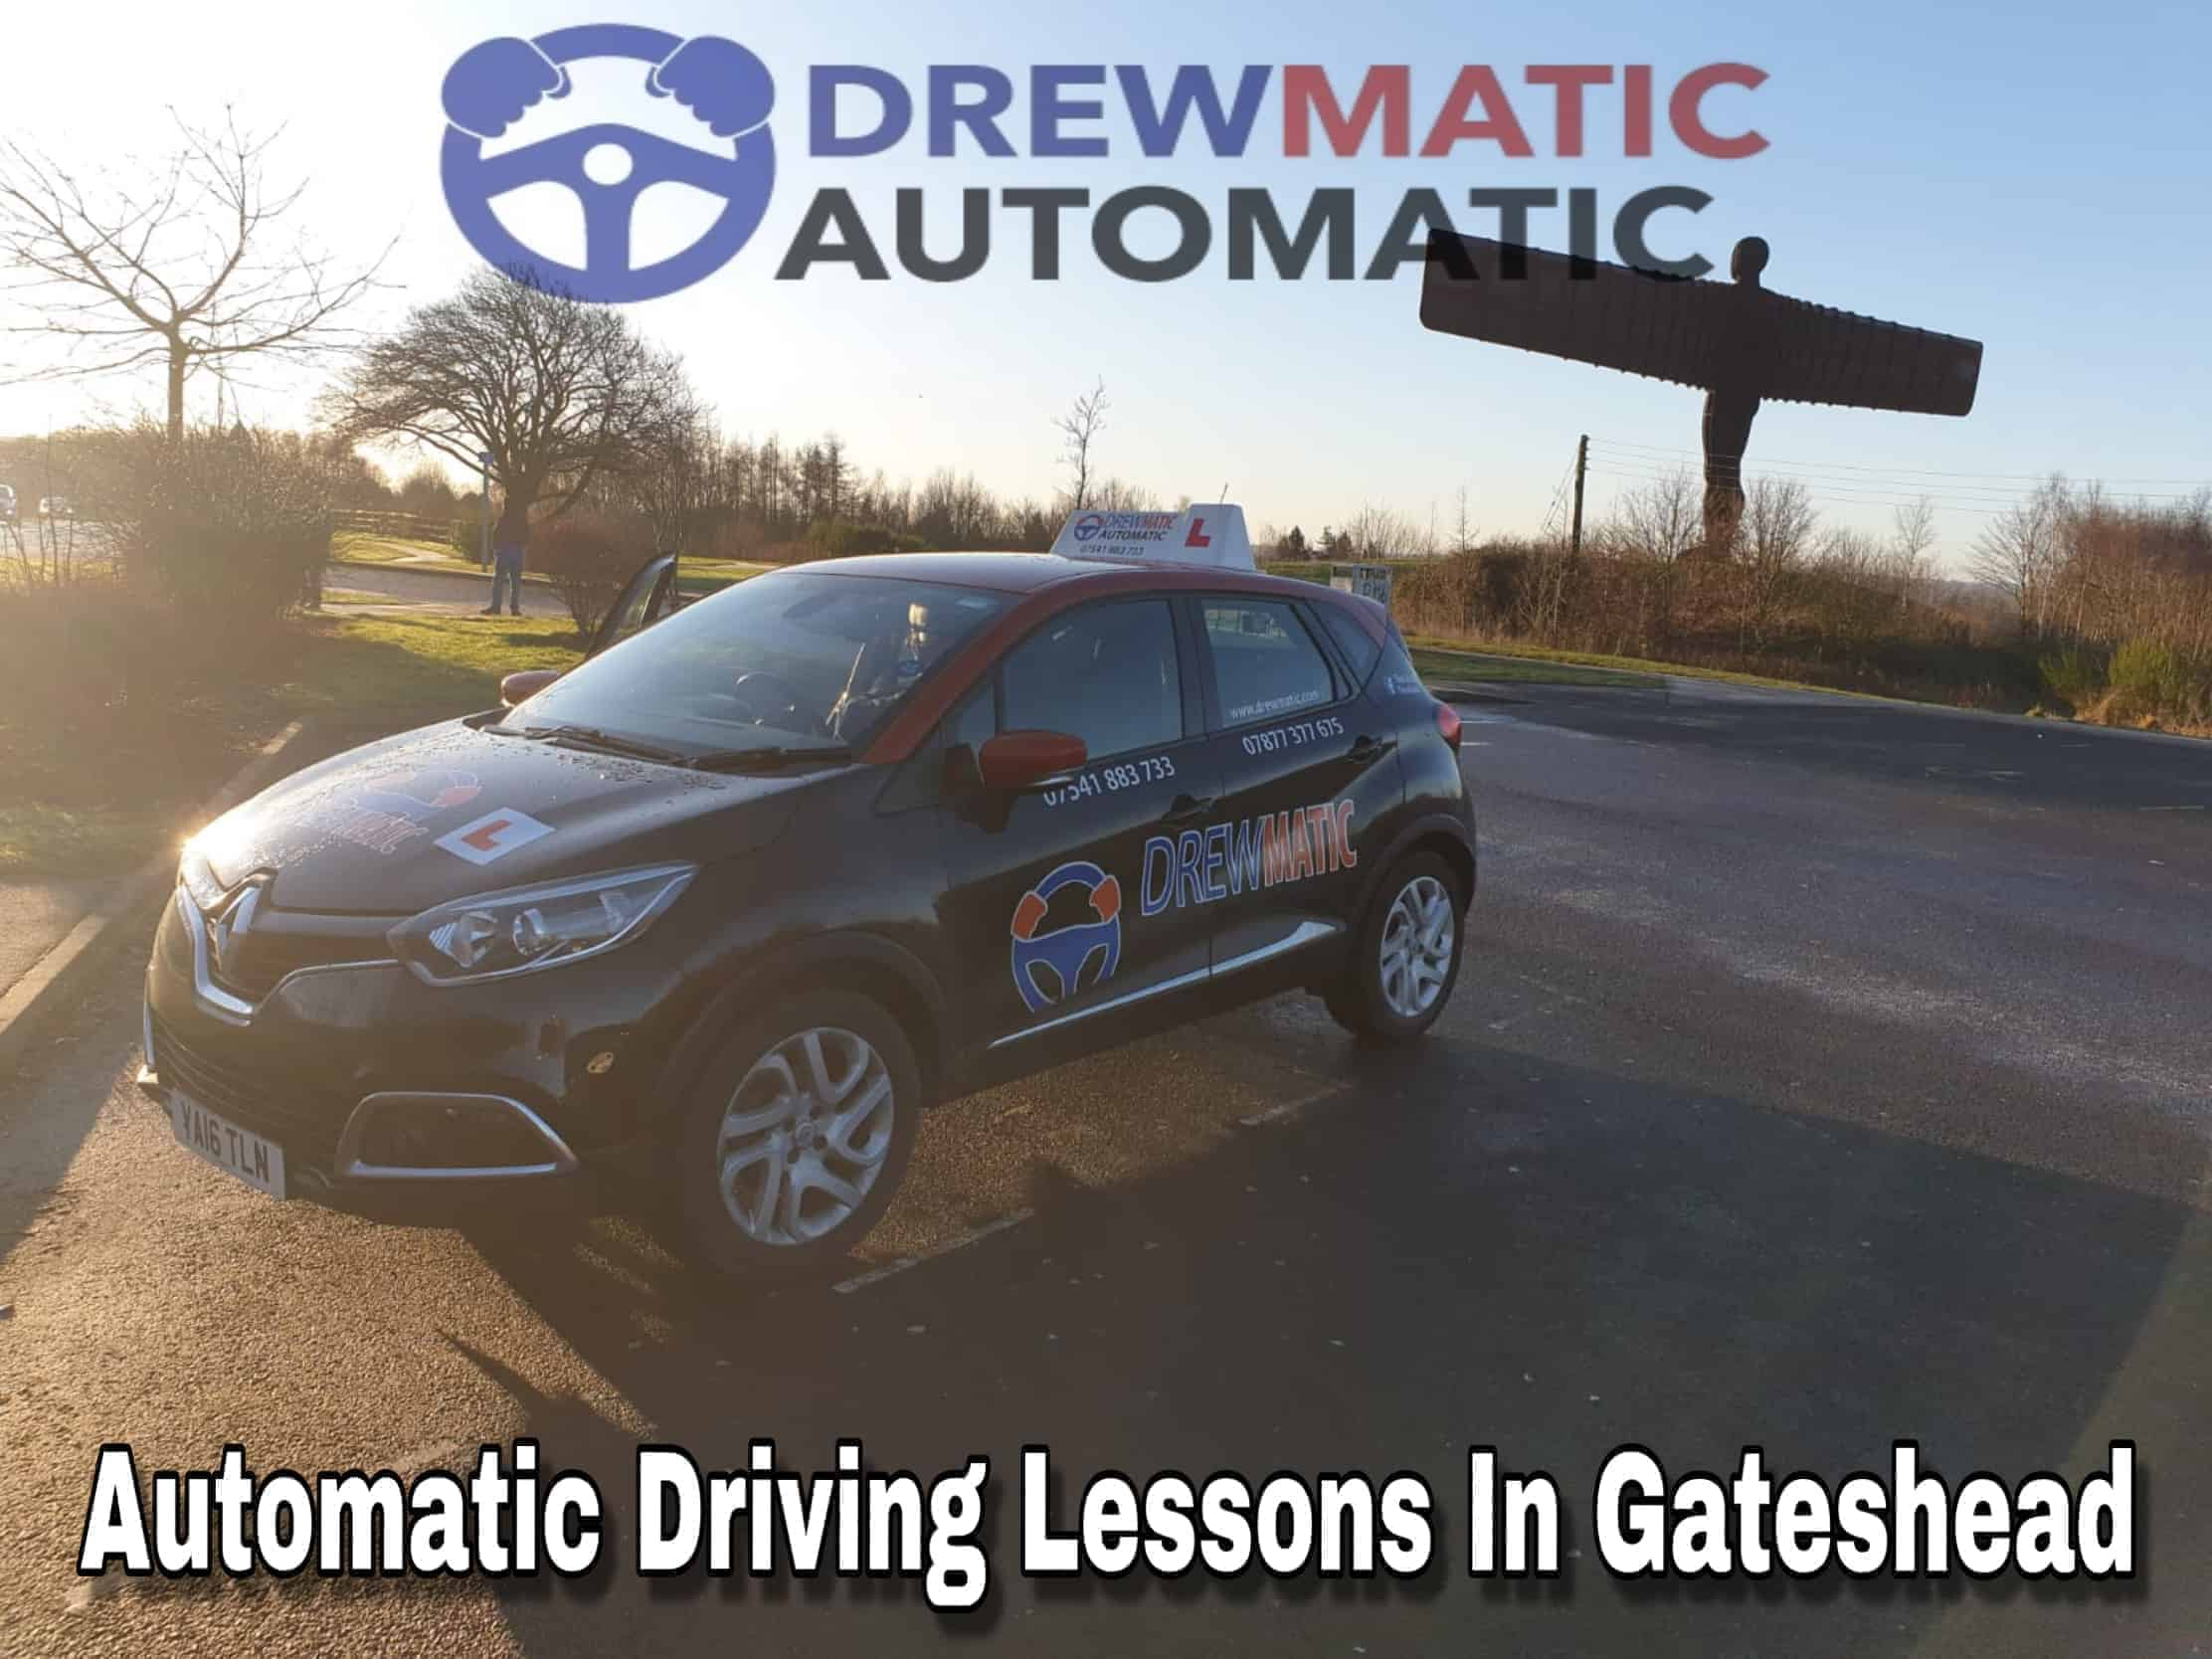 Automatic Driving Lessons In Gateshead